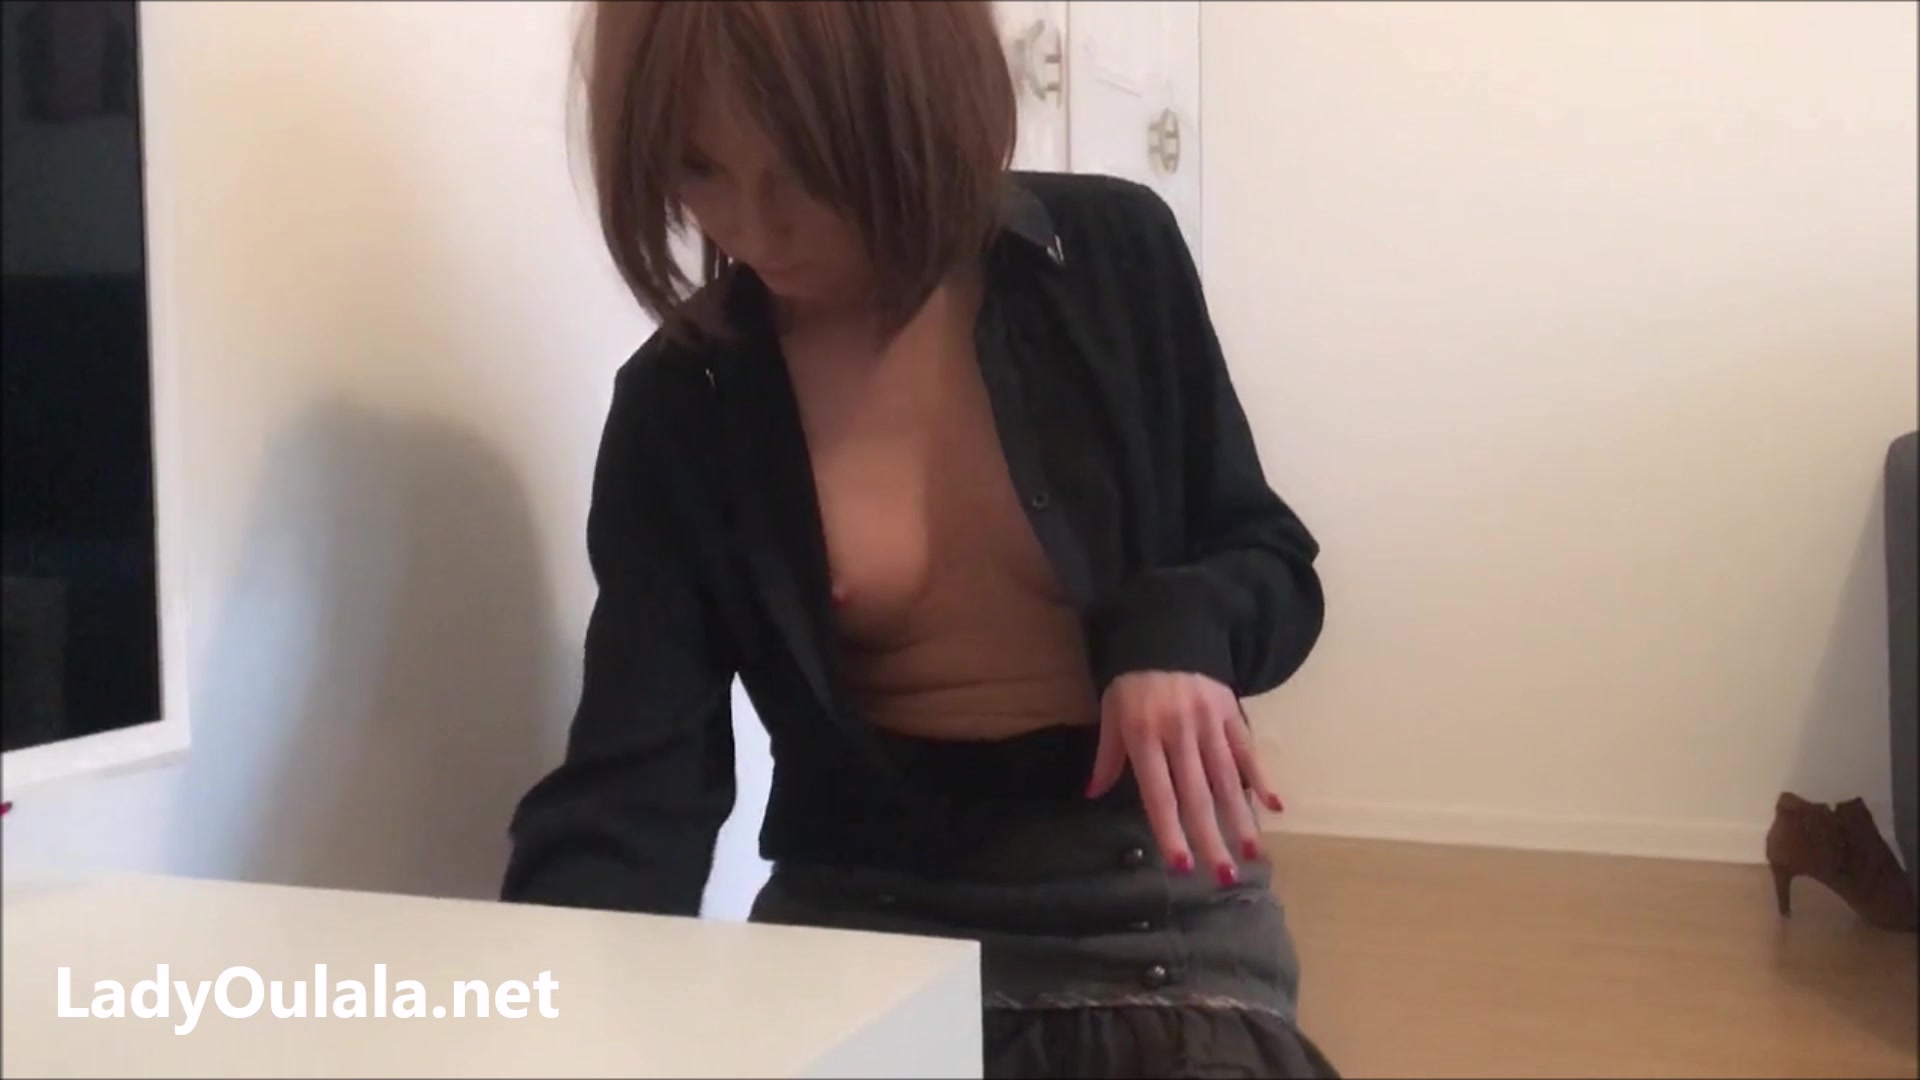 oops drunk upskirt down blouse picstures